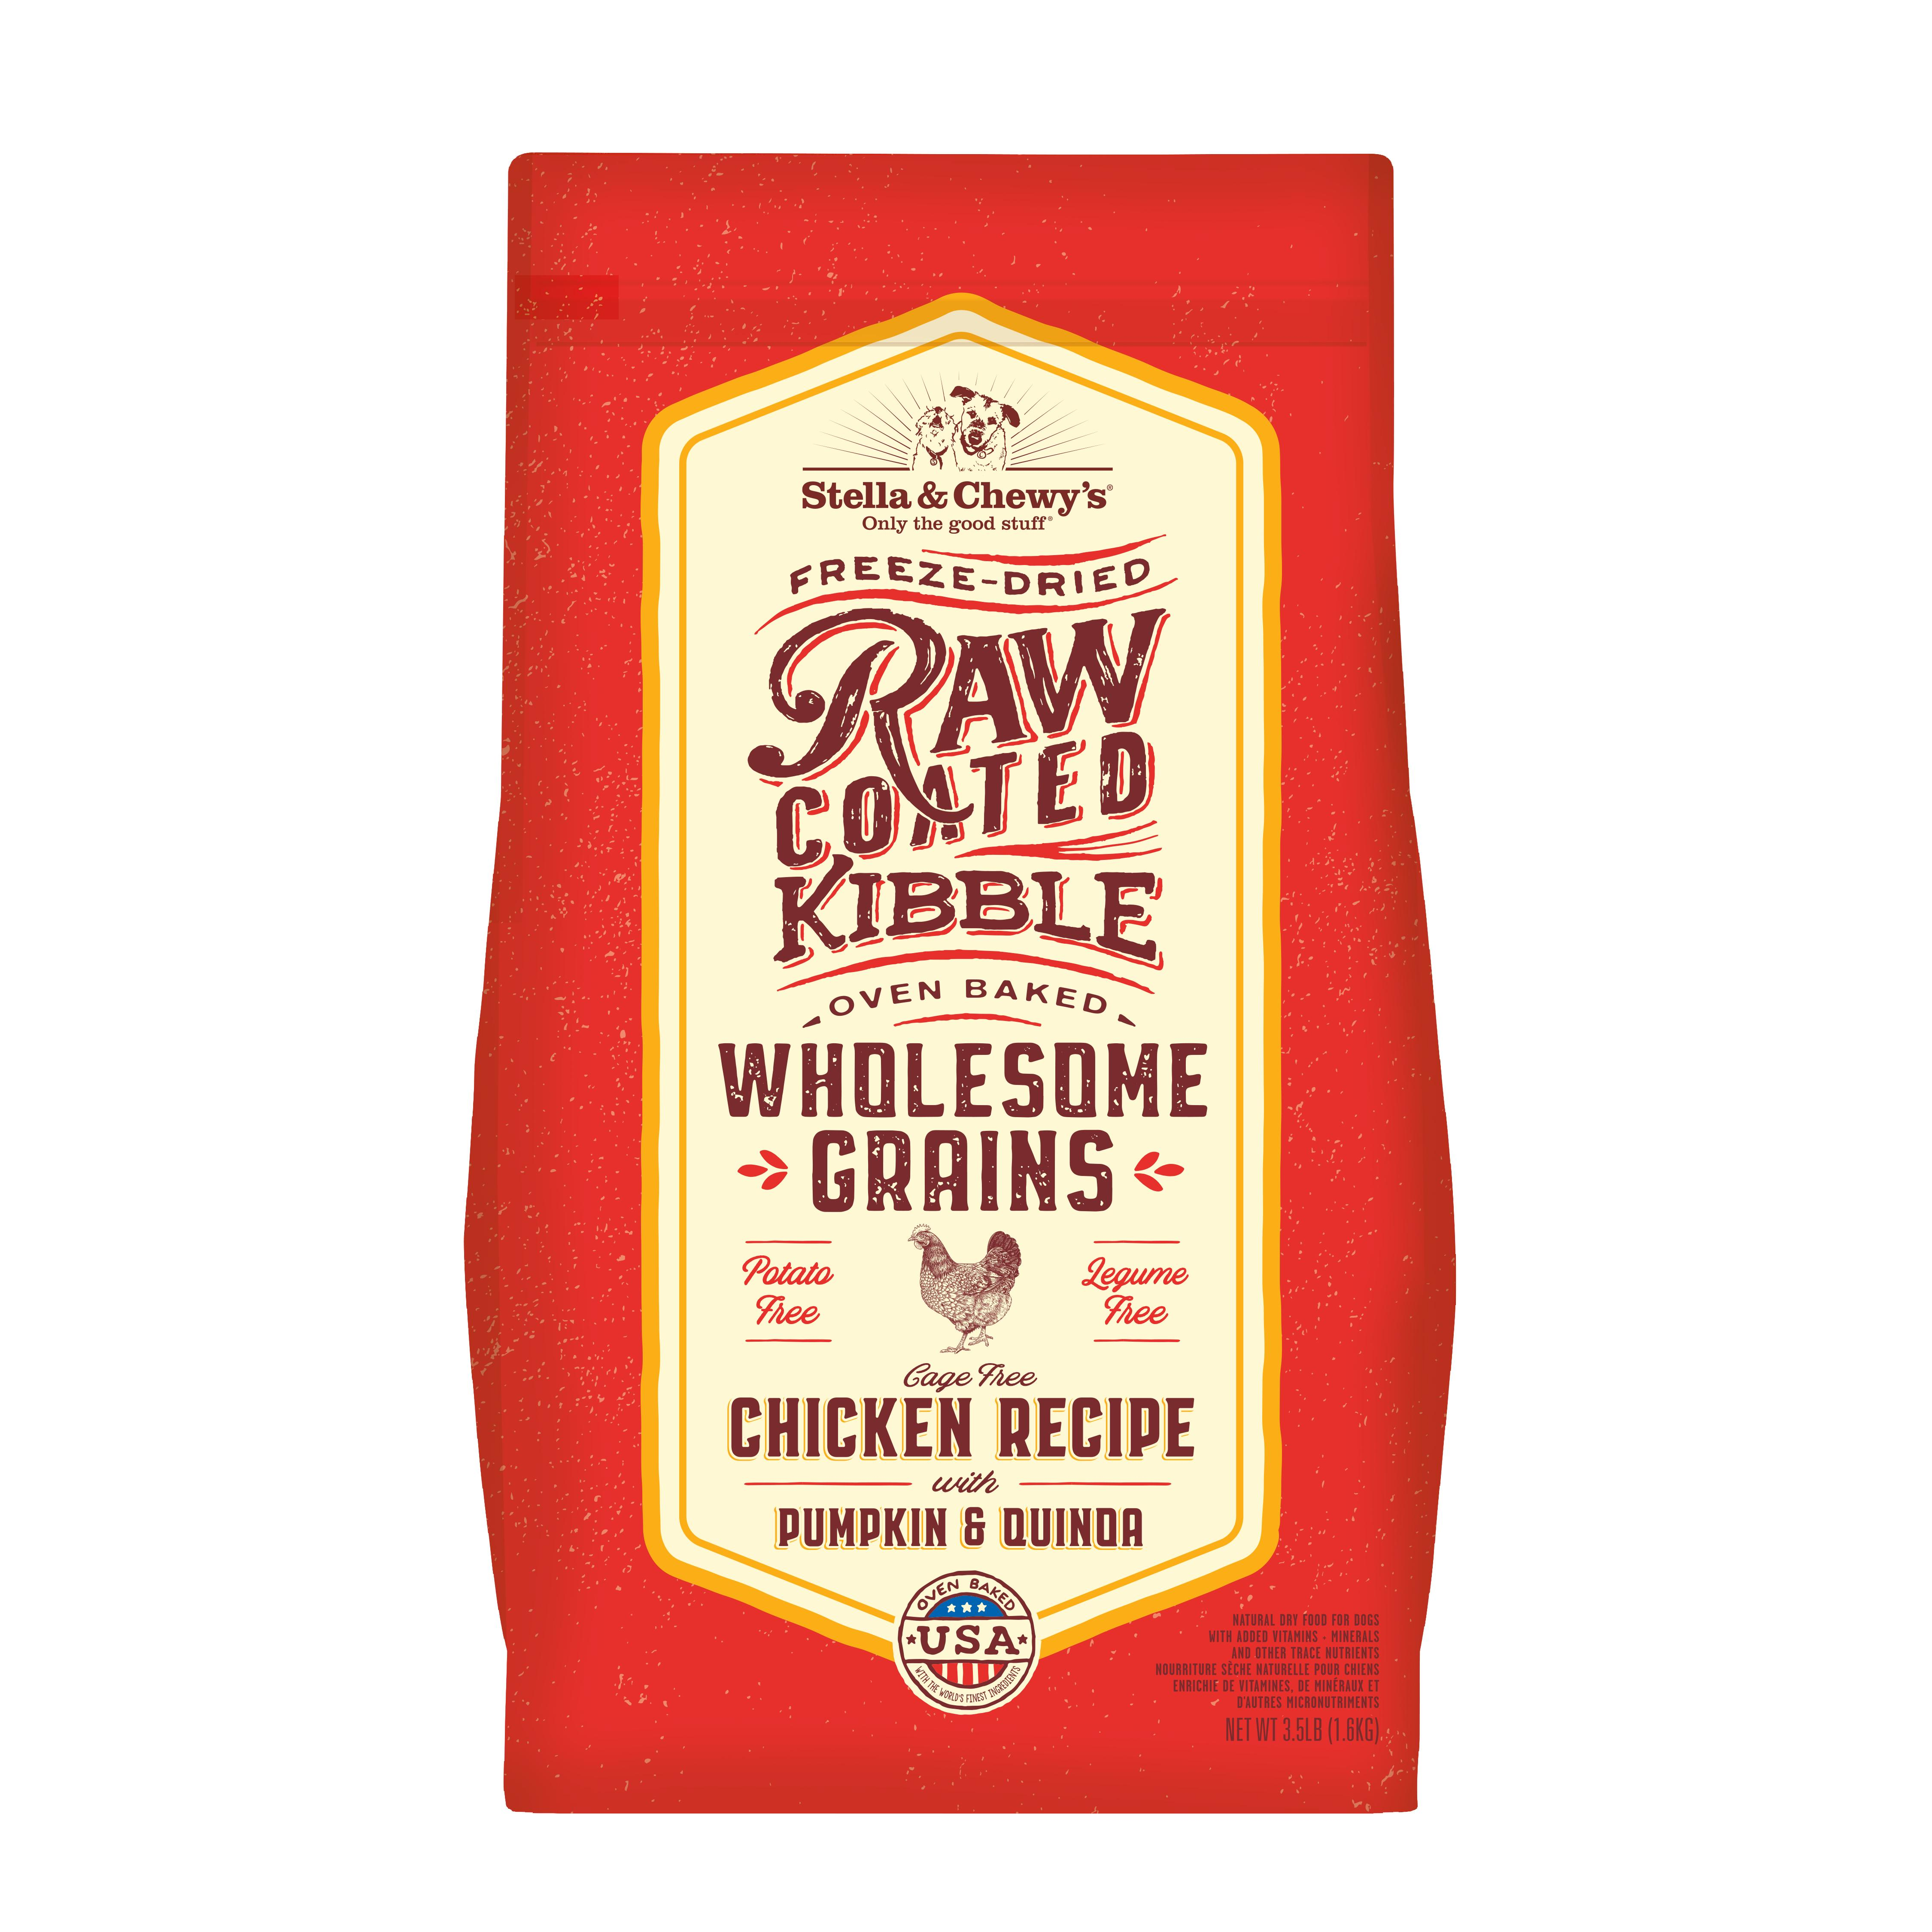 Stella & Chewy's Raw Coated Kibble Wholesome Grains Chicken, Pumpkin & Quinoa Dry Dog Food, 3.5-lb